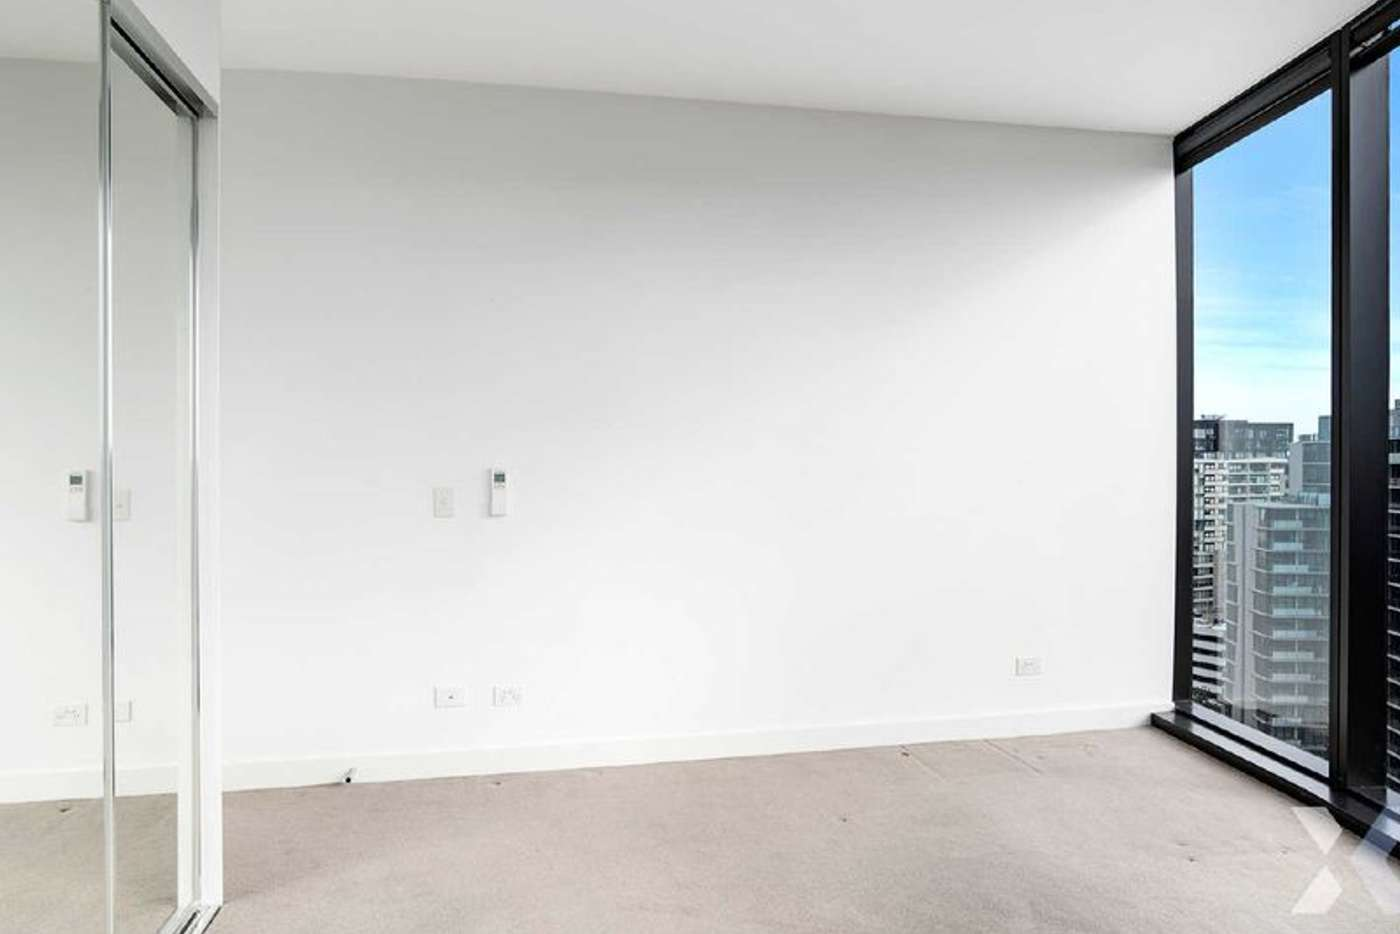 Sixth view of Homely apartment listing, 1207/35 Malcolm Street, South Yarra VIC 3141